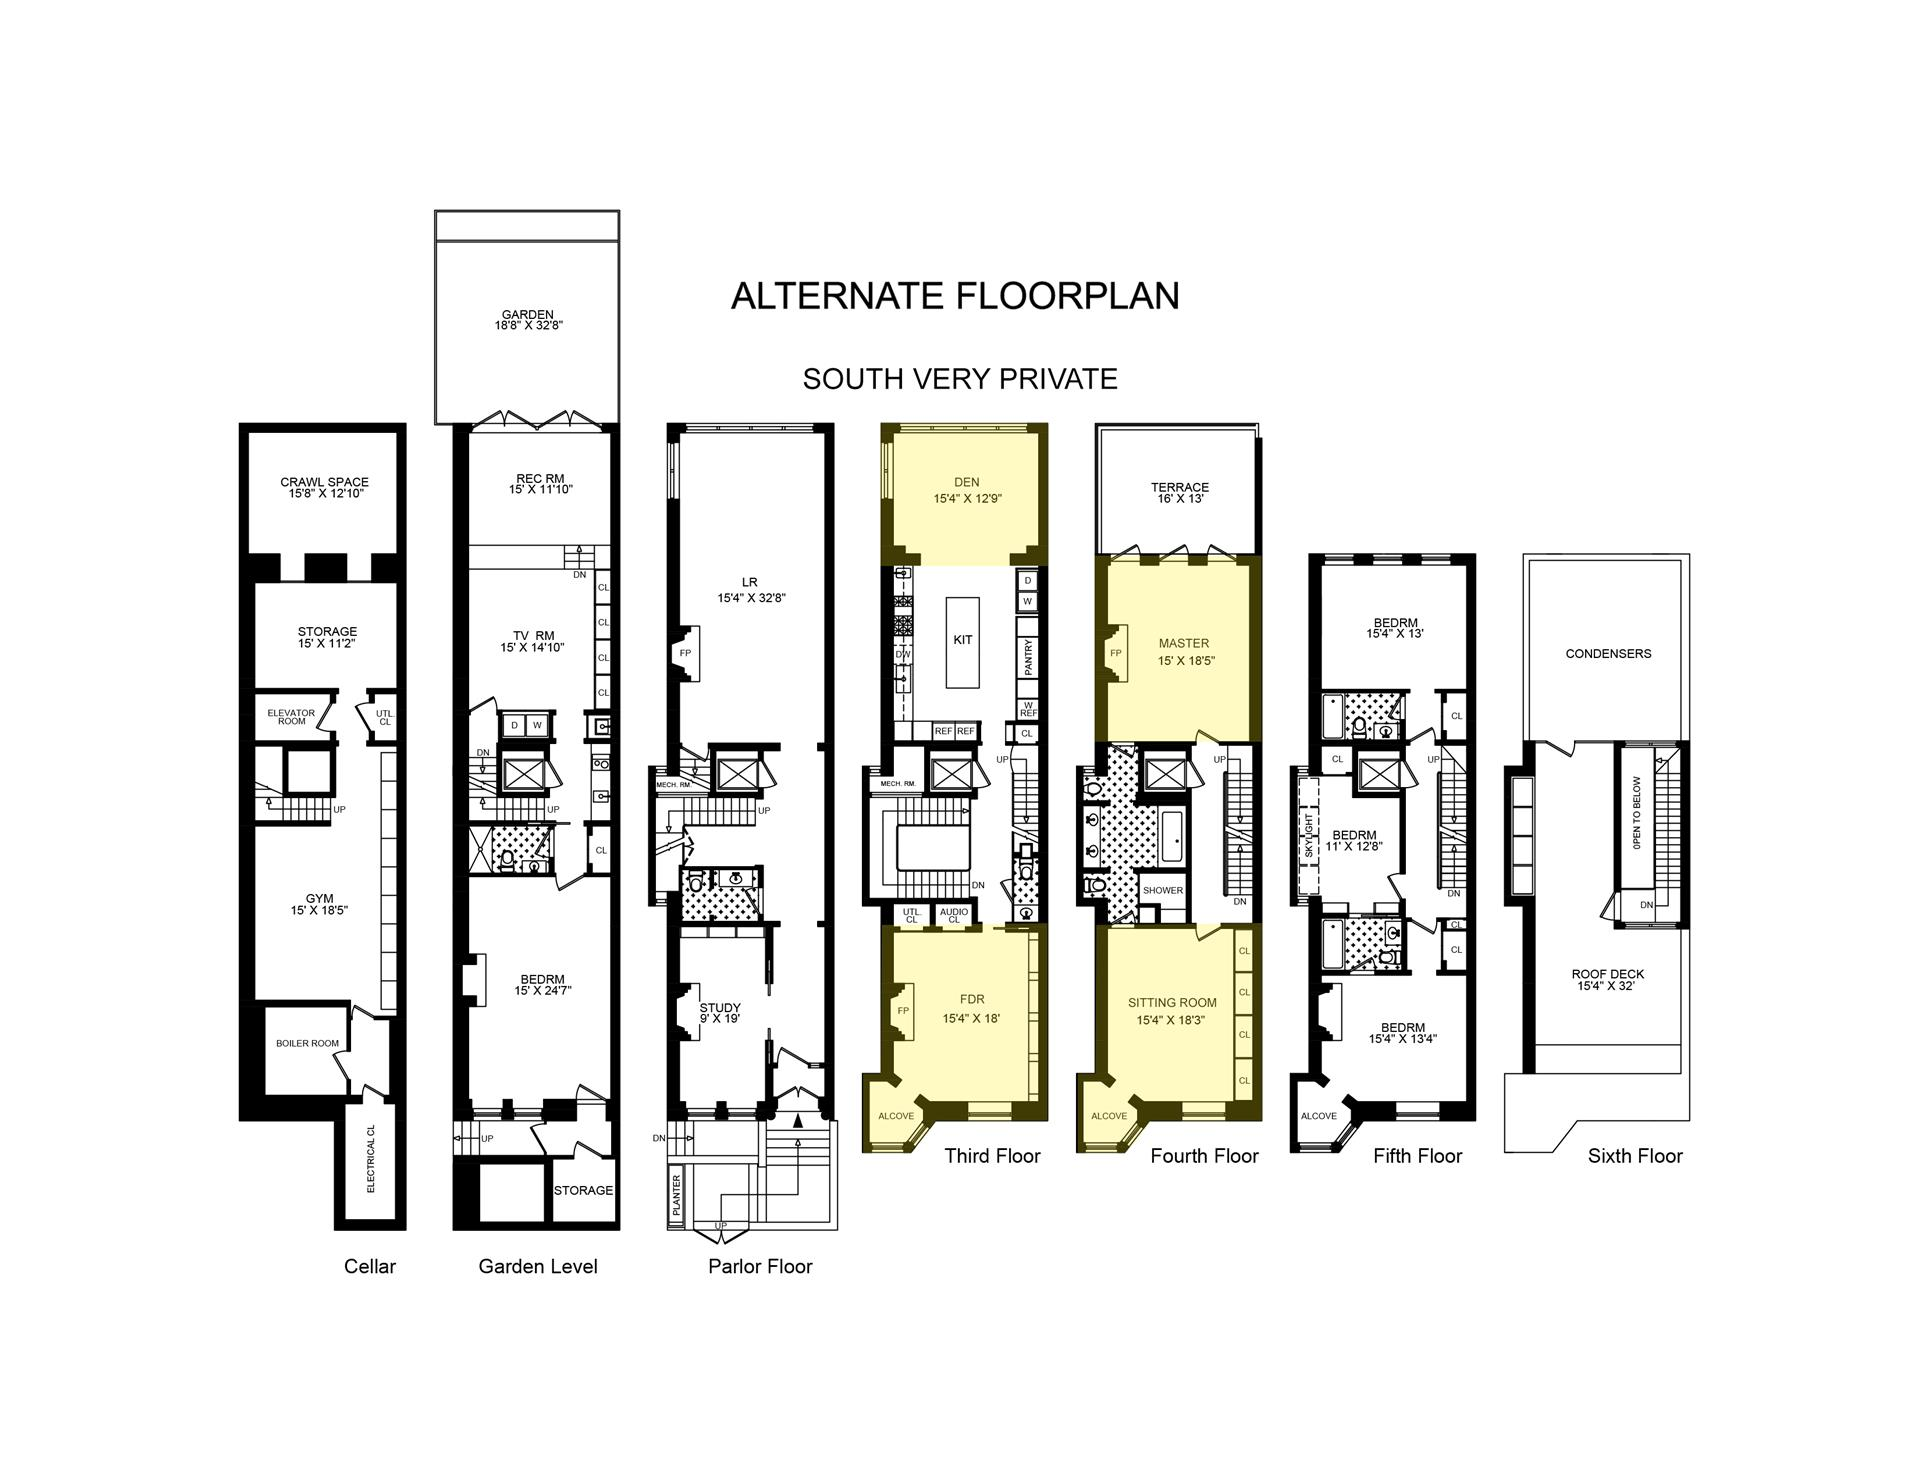 Floor plan of 10 East 92nd St - Carnegie Hill, New York